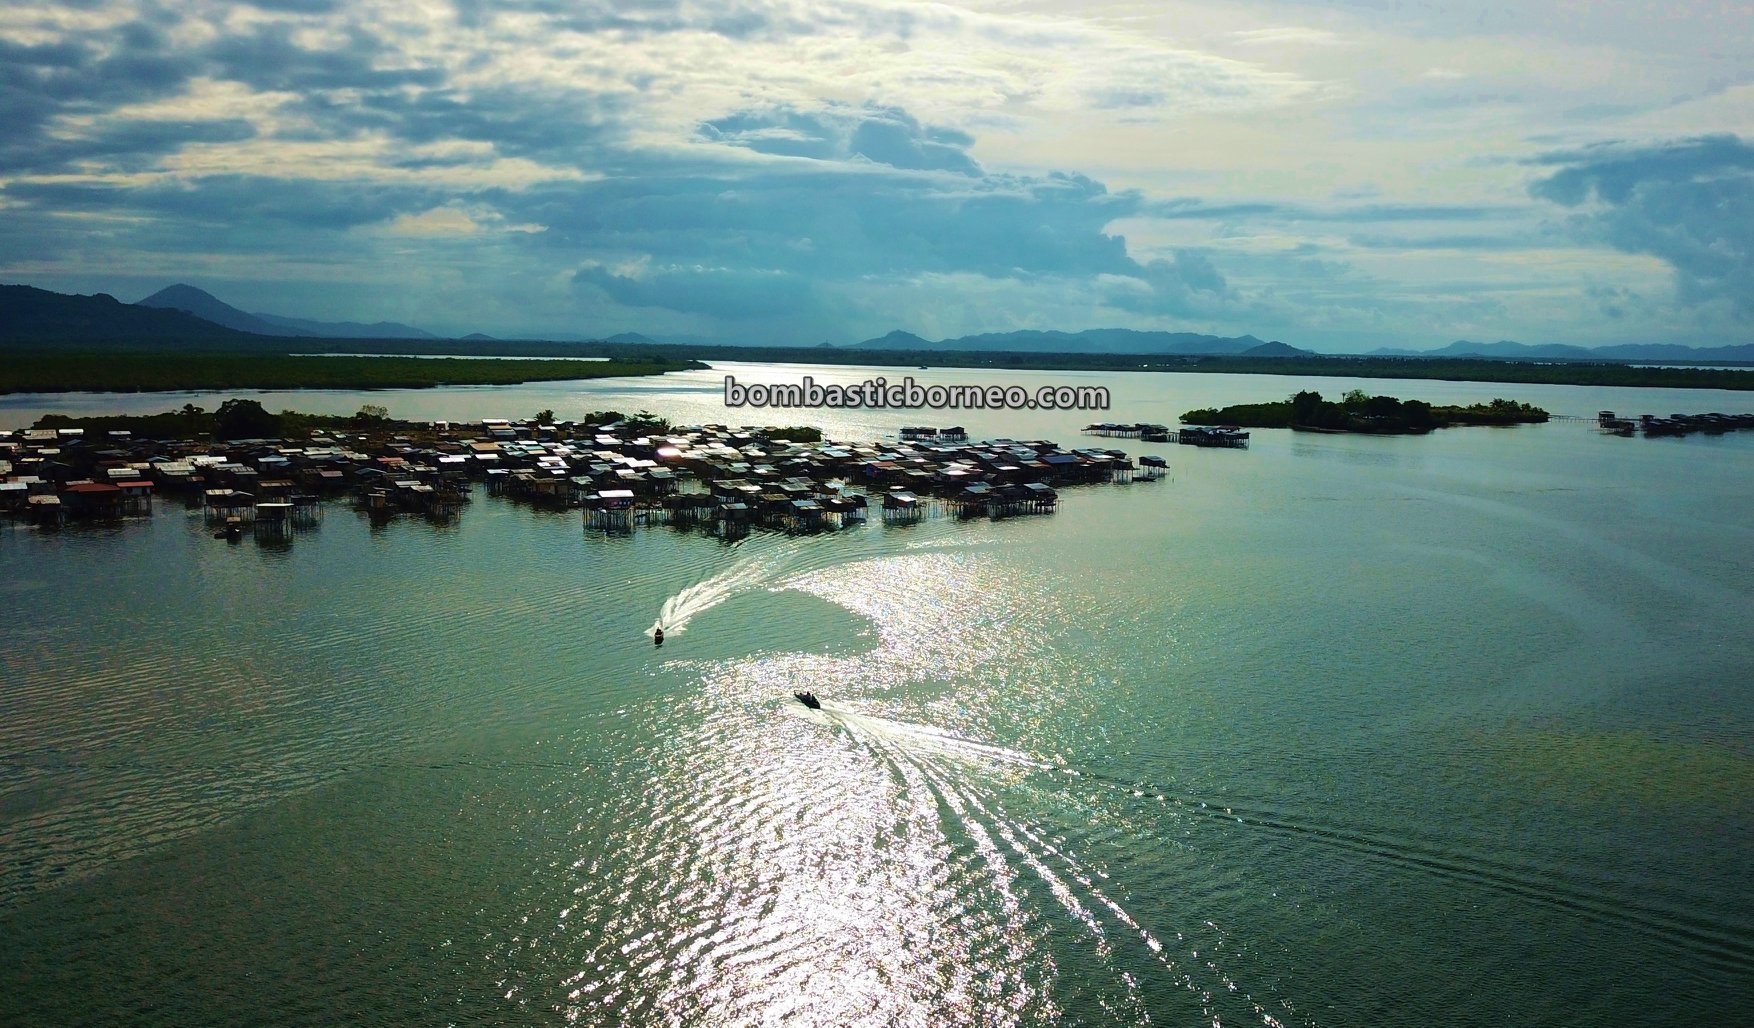 Pesta Regatta Lepa, Water Festival, backpackers, destination, nature, island, Tawau, Malaysia, Tourism, tourist attraction, Trans Border, 探索婆罗洲旅游景点, 沙巴斗湖仙本那,